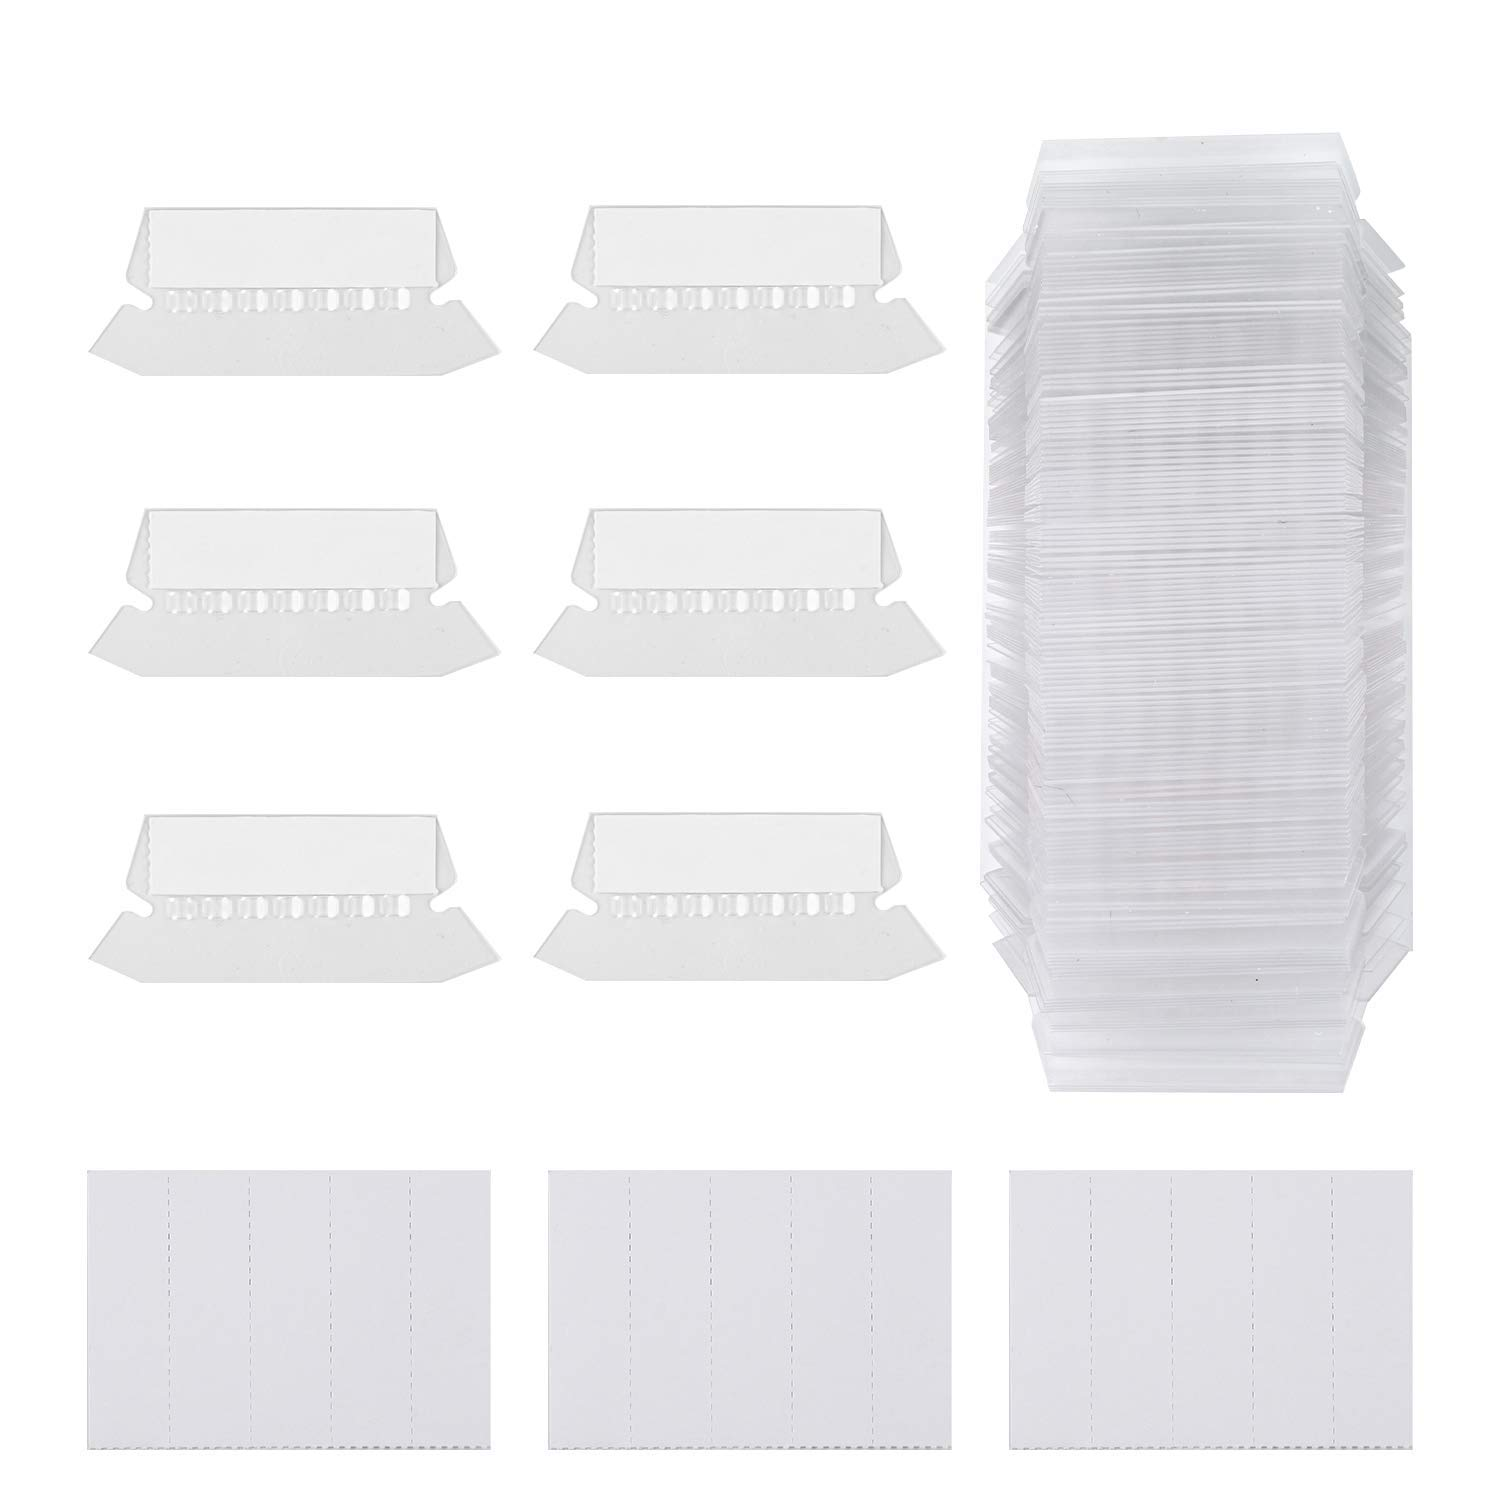 Gydandir 125 Sets Hanging Folder Tabs and 250 Sets Inserts for Quick Identification of Hanging Files,Clear to Read,2 inch Hanging File Inserts File Folder Labels